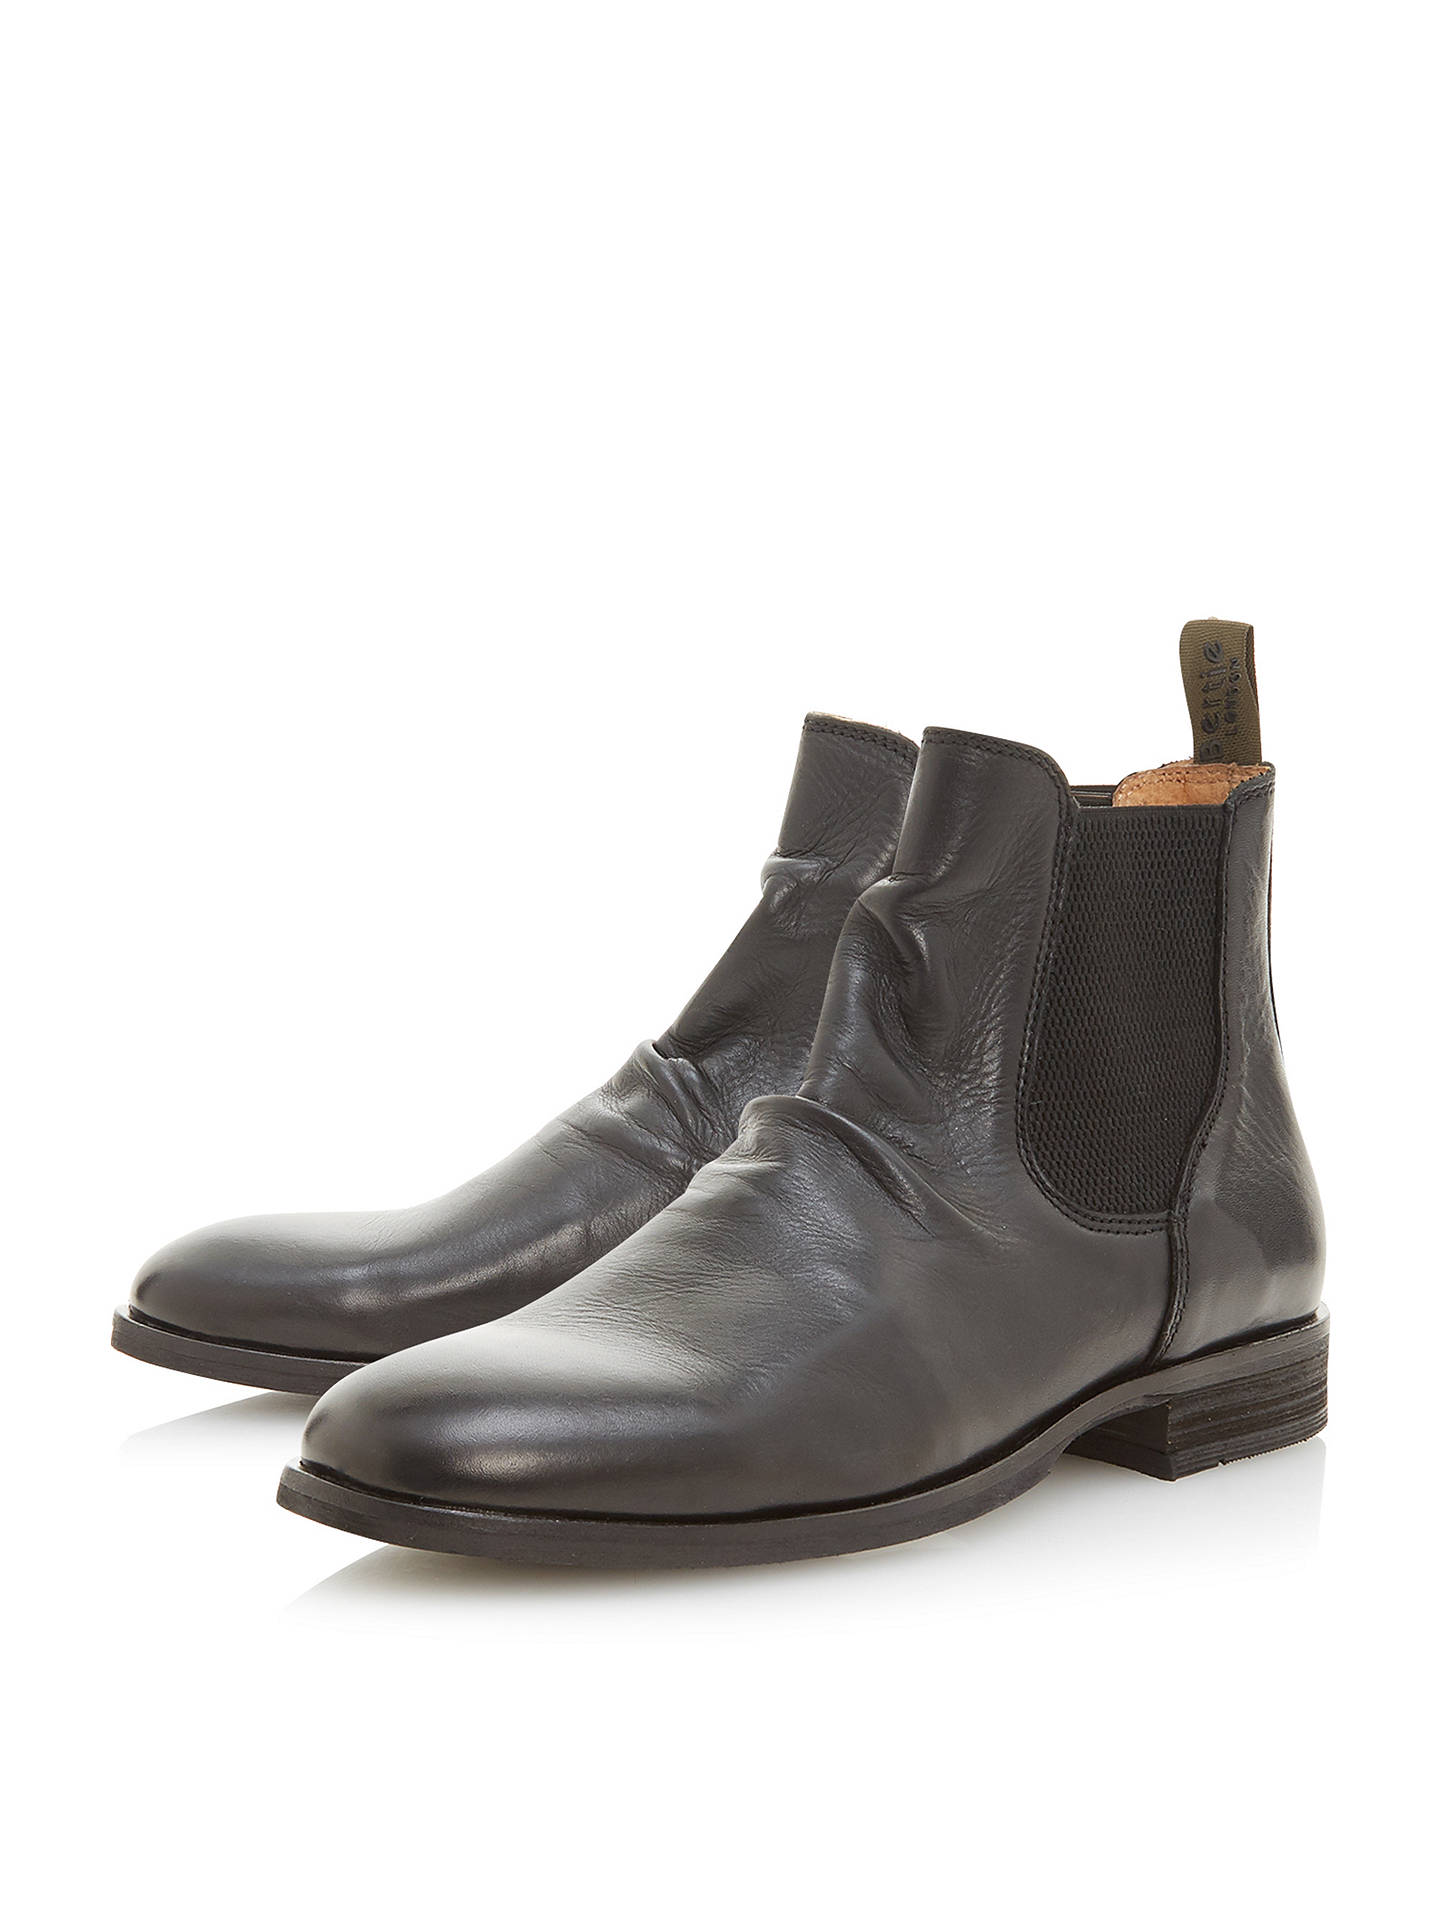 Buy Bertie Cannibal Chelsea Boots, Black, 12 Online at johnlewis.com